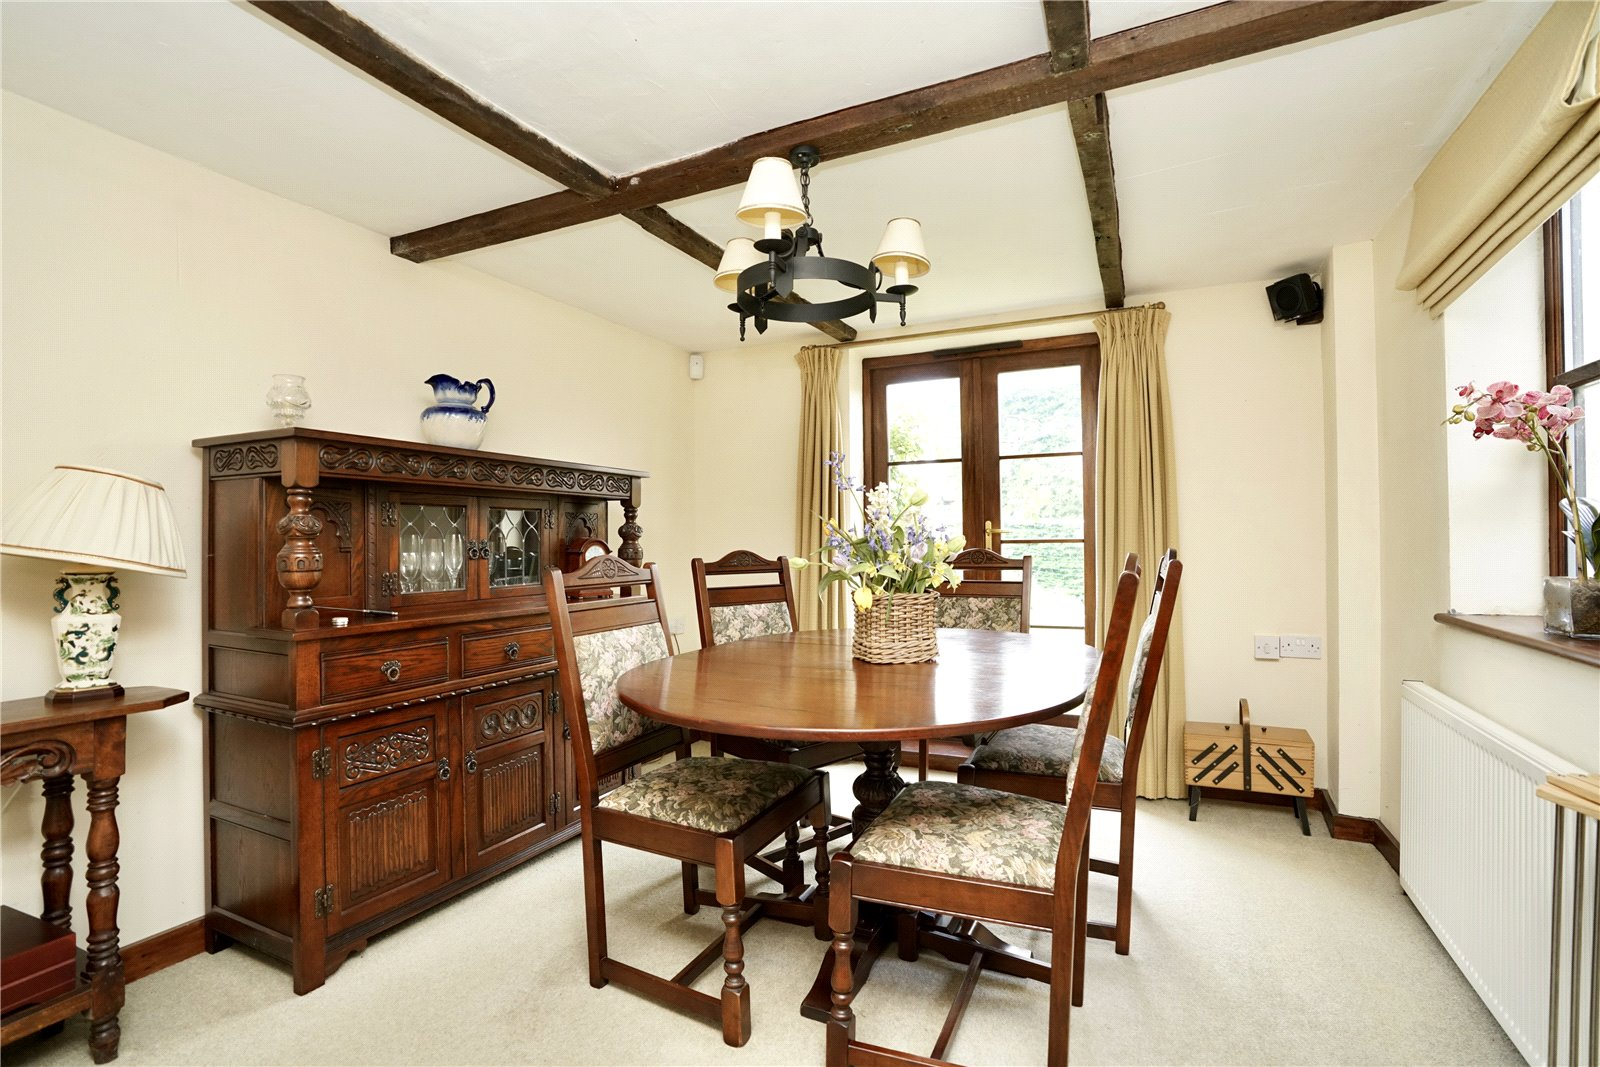 5 bed house for sale in Colmworth Road, Little Staughton 5